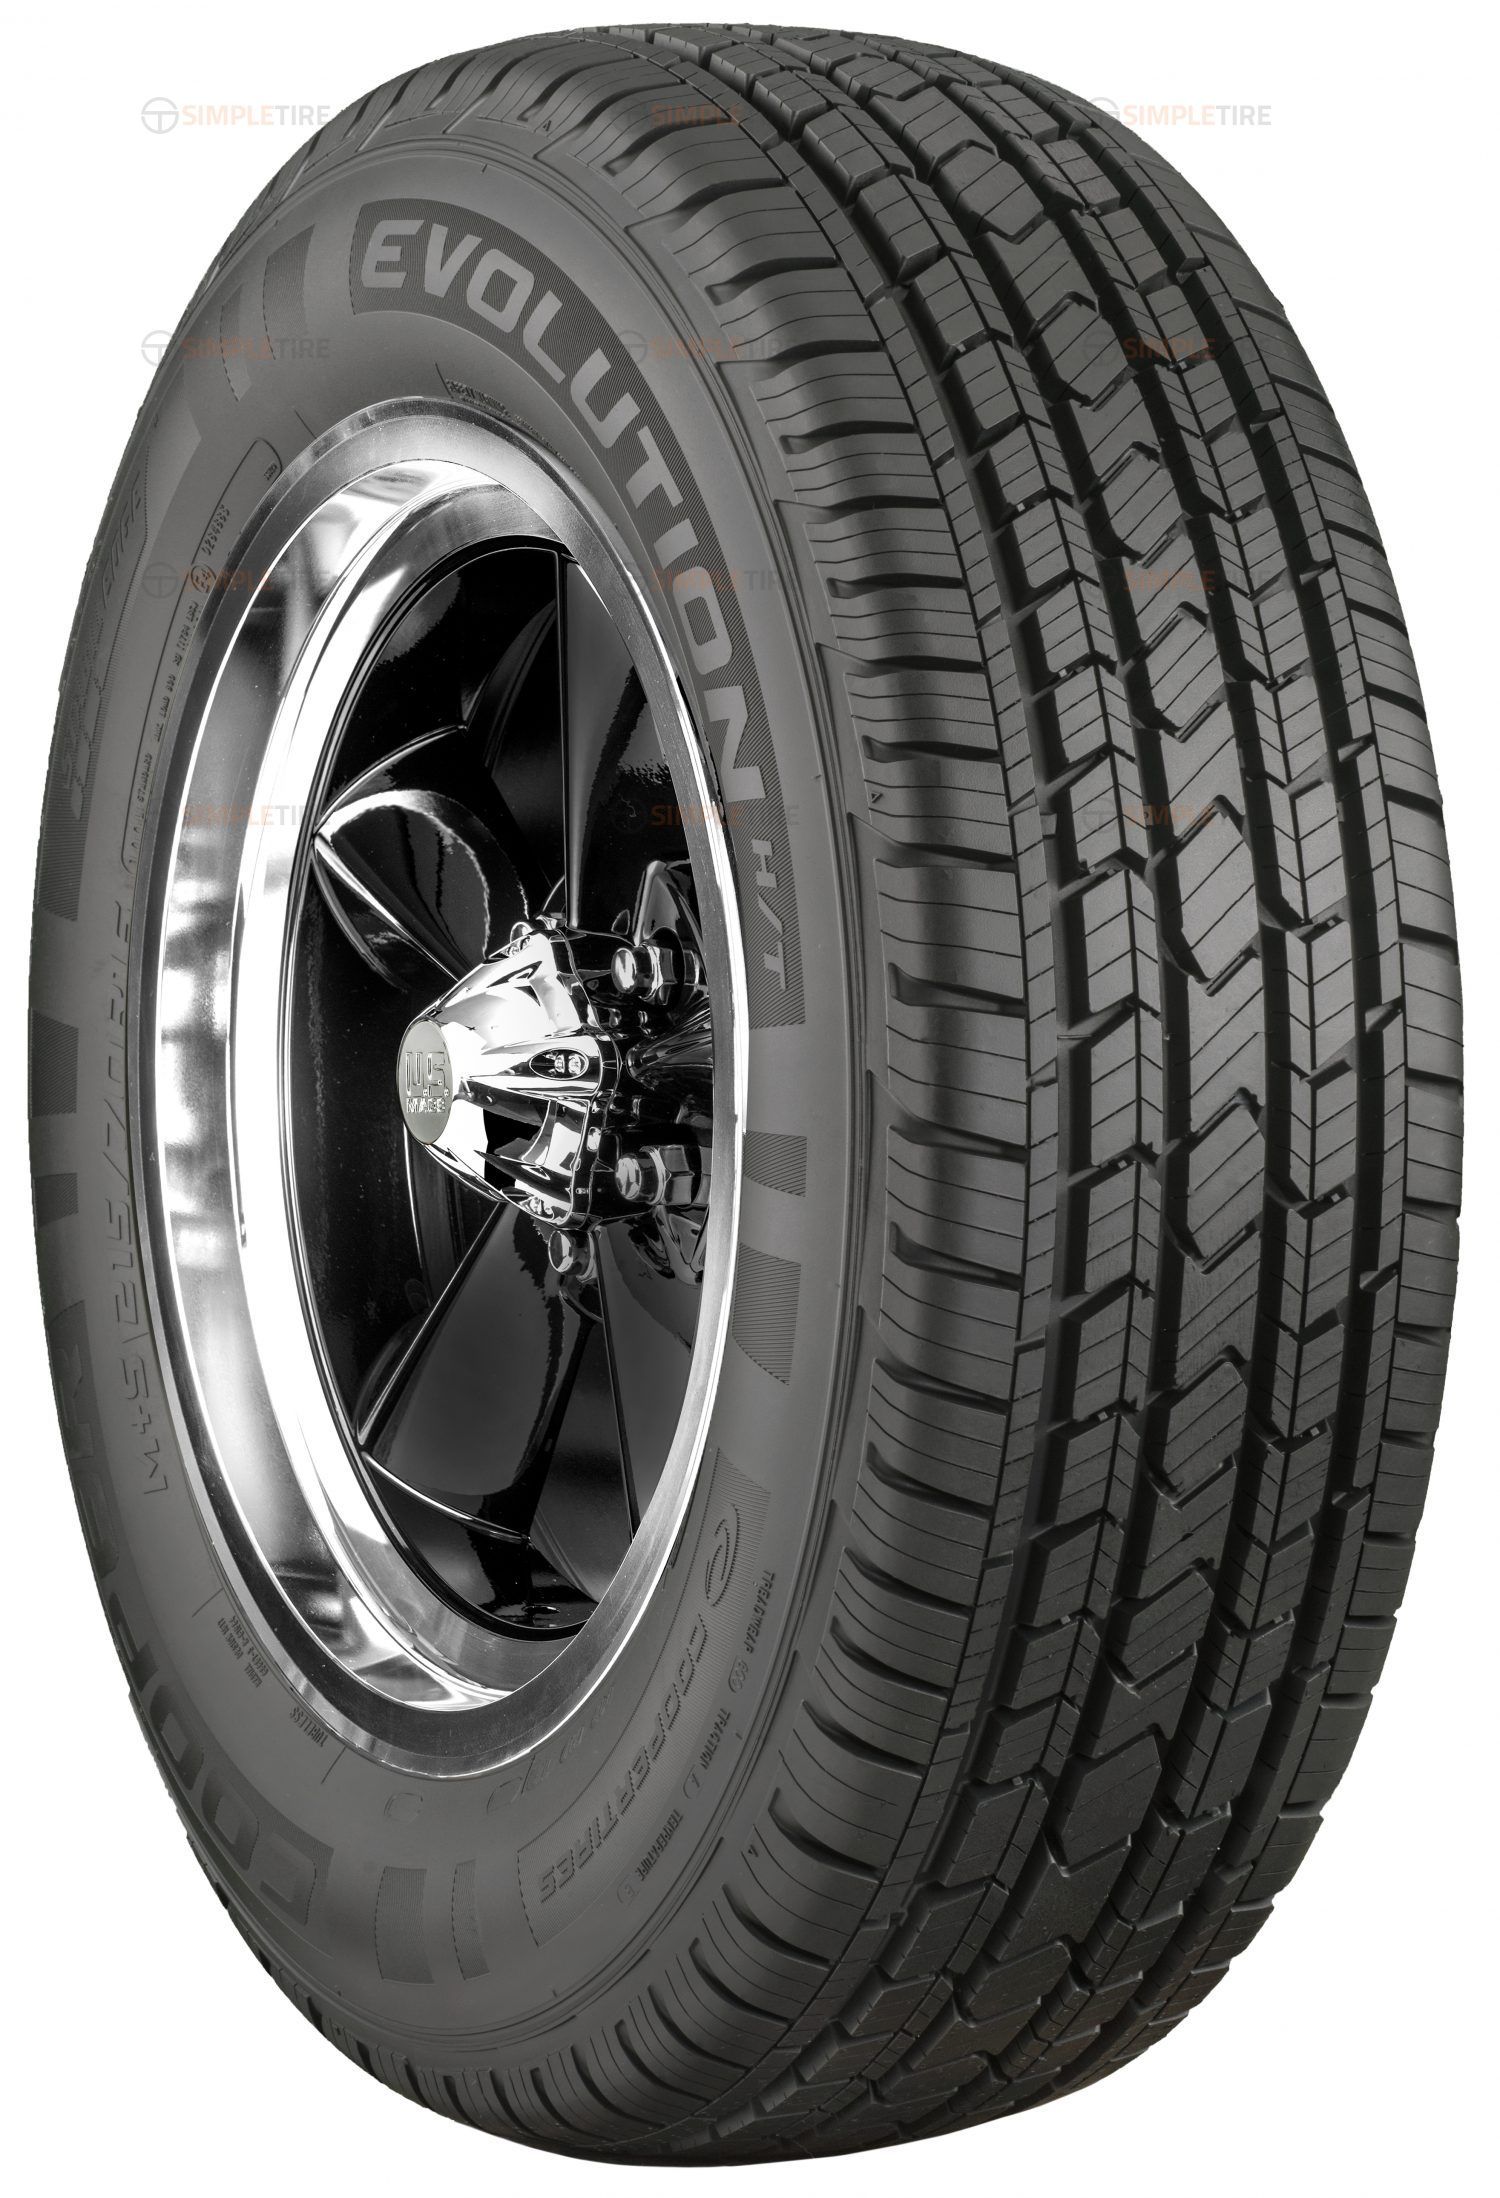 90000029100 235/65R17 Evolution HT Cooper